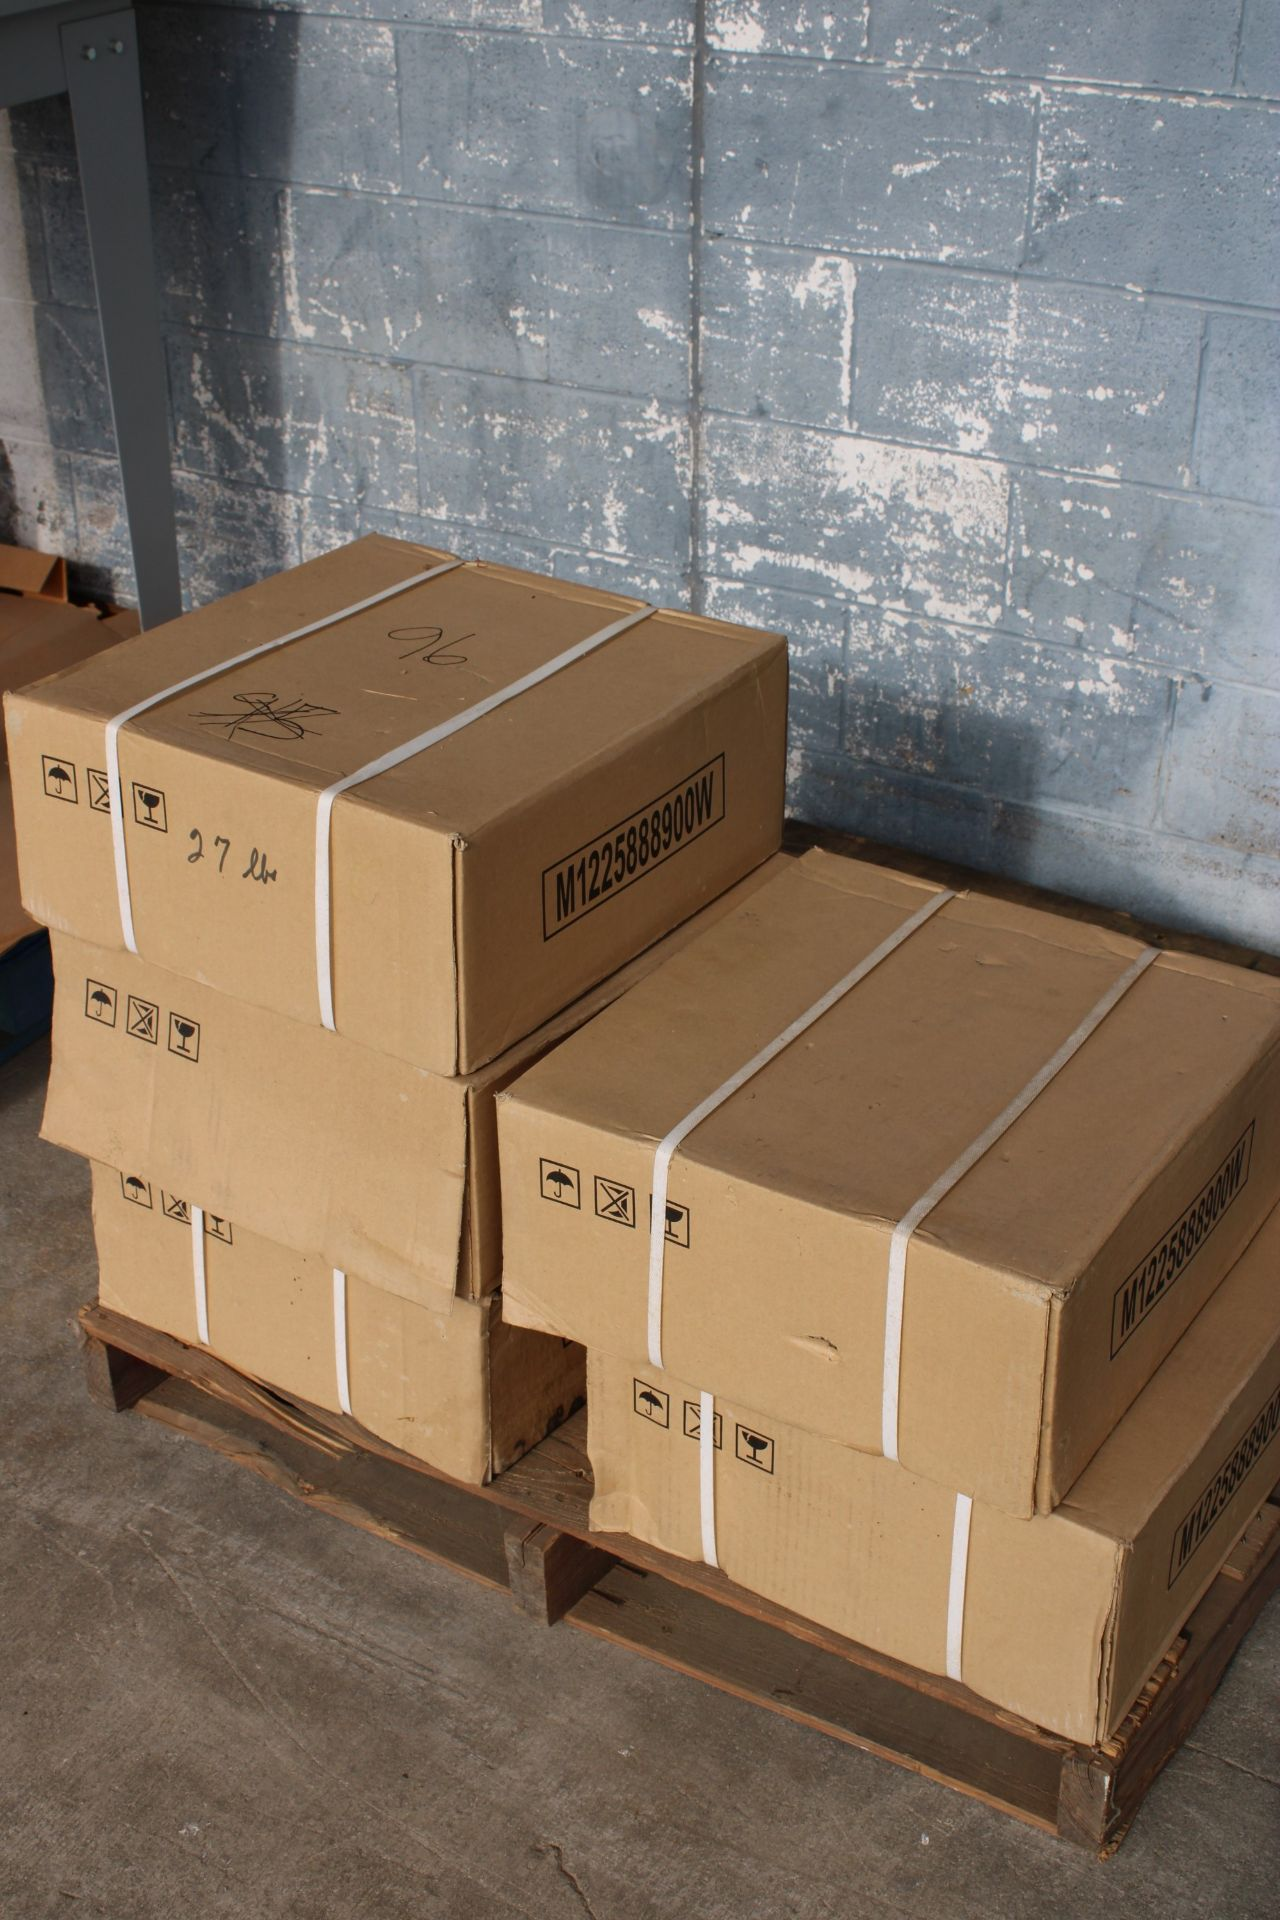 """Advance Packaging Arch Carton Strapper, 40""""- 42"""" Opening, Used, Ready to wire and use with table - Image 3 of 3"""